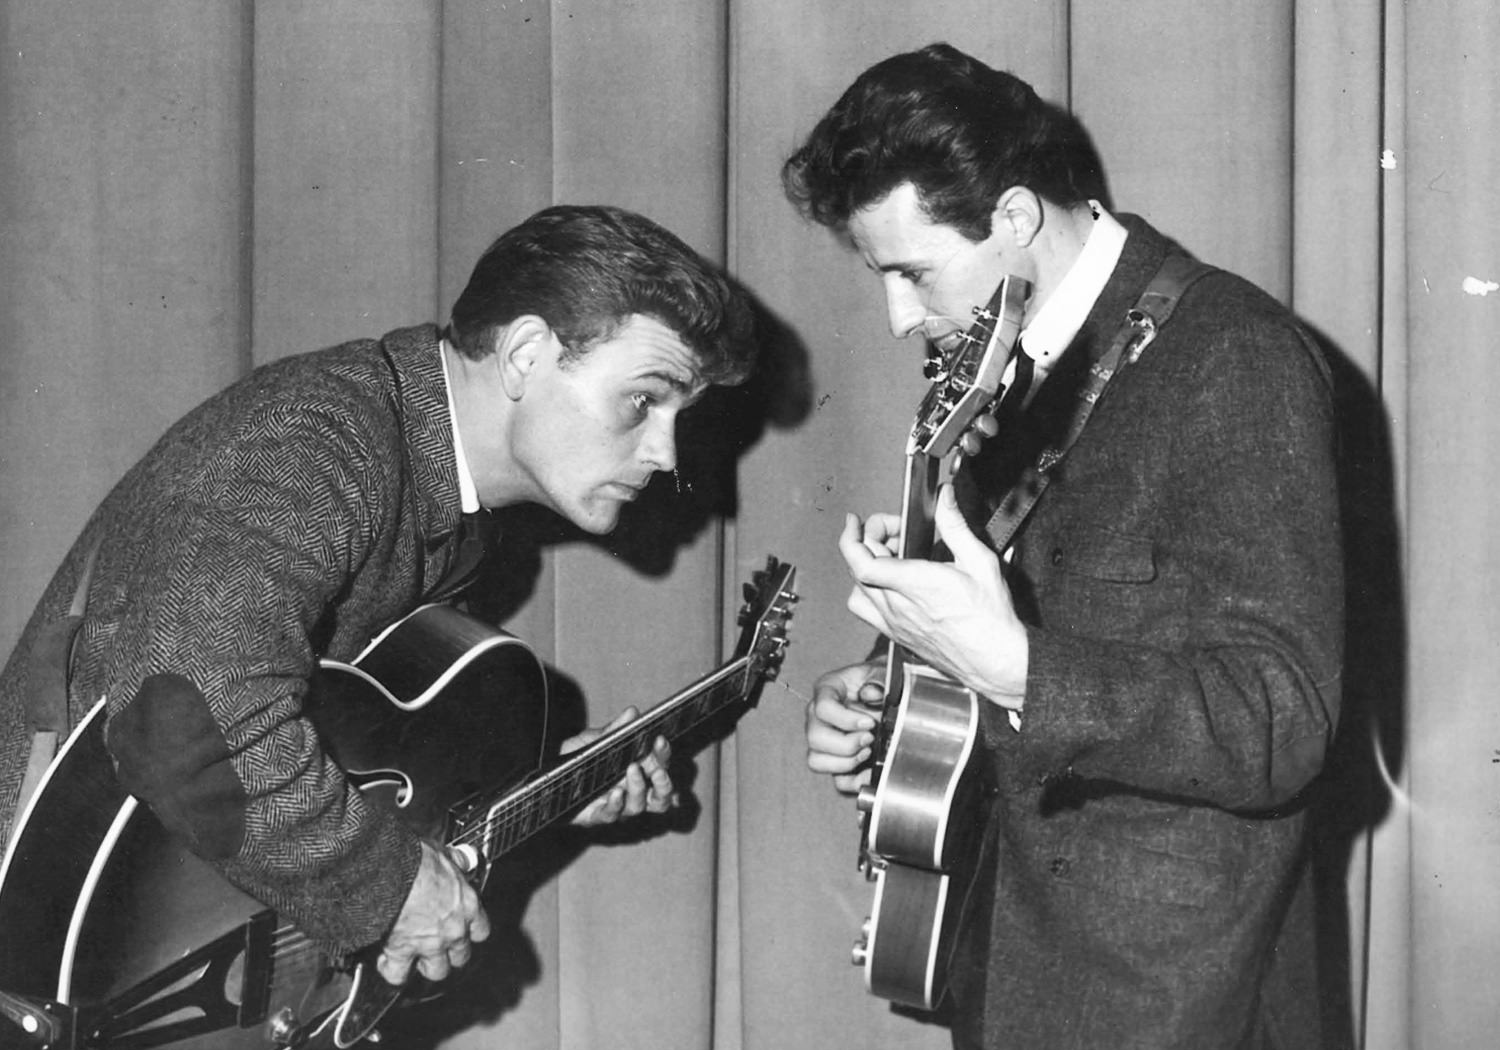 Jerry Reed and Chip Young